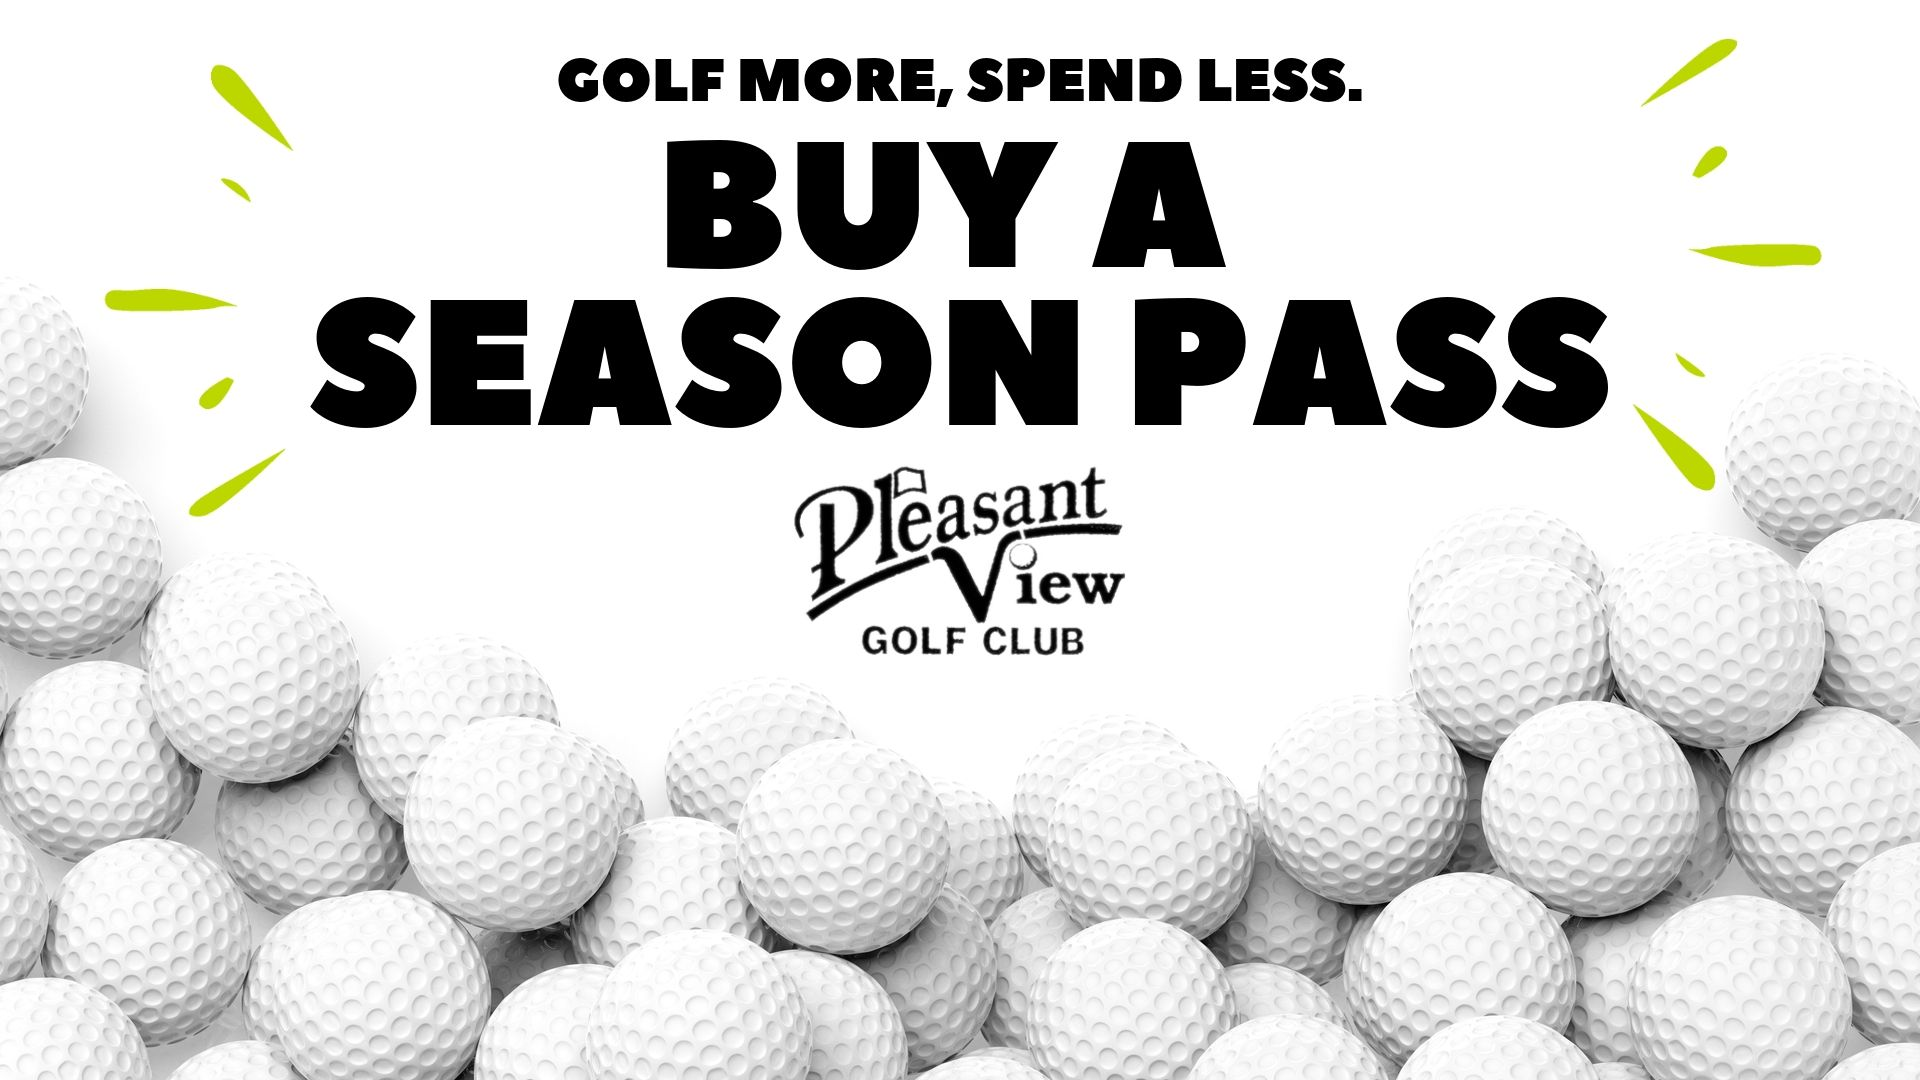 NOW is the time to buy a season pass!